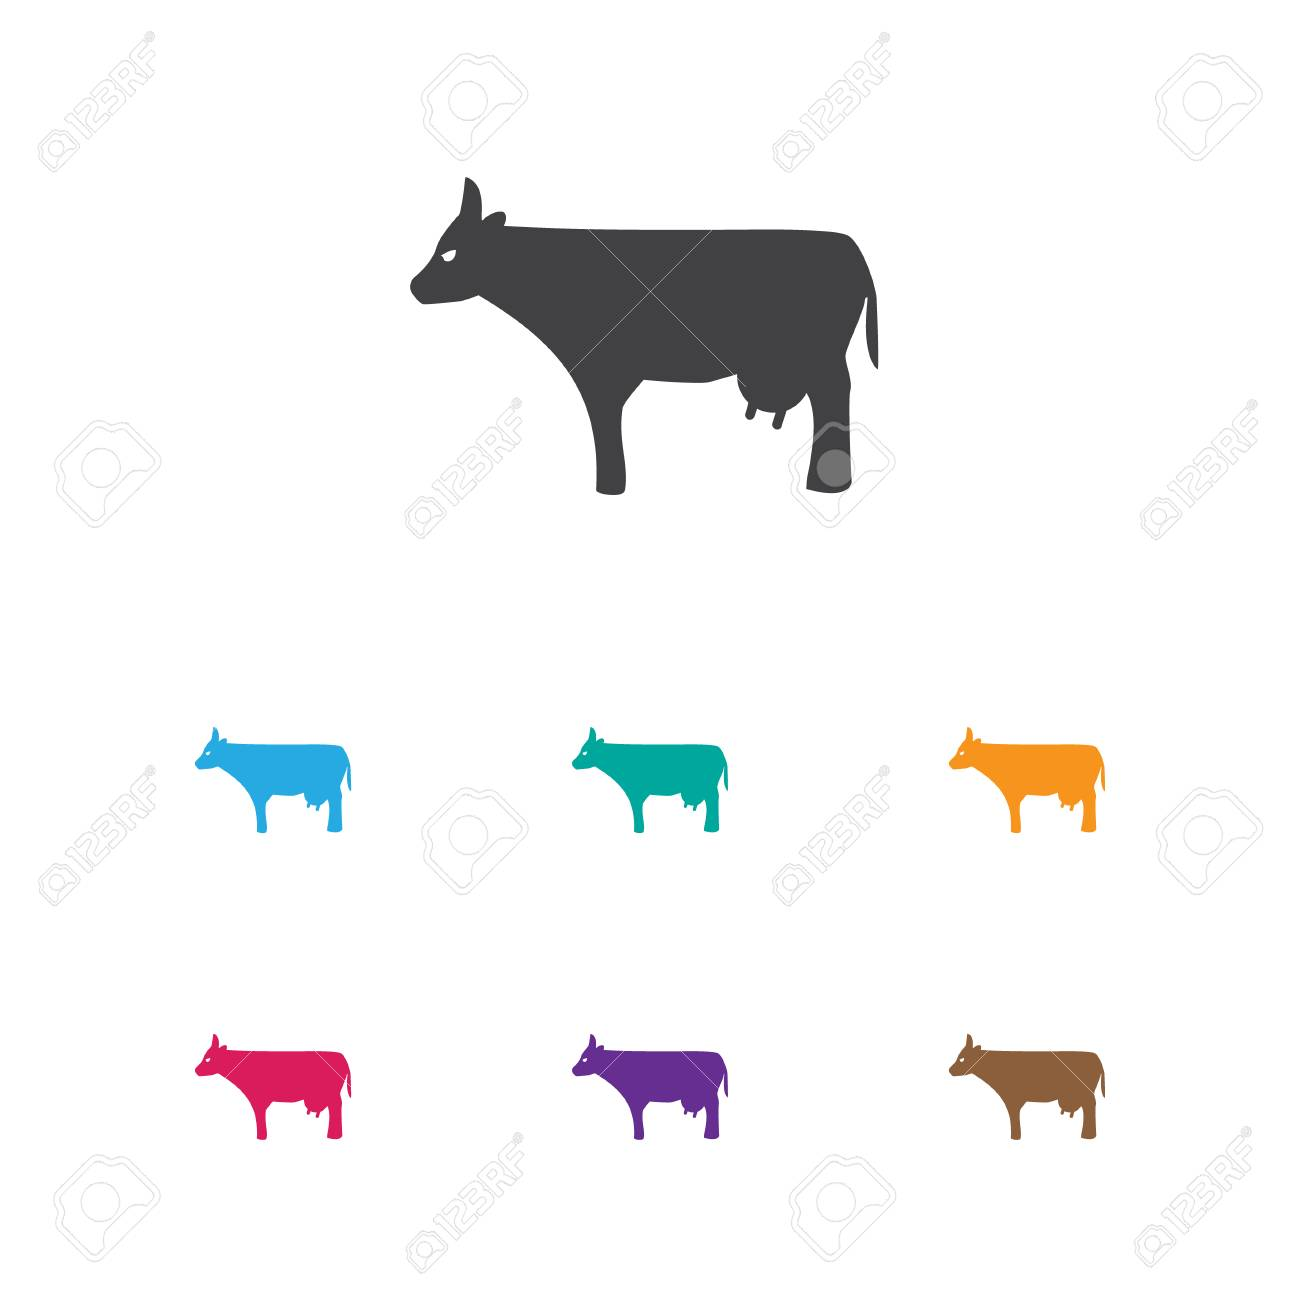 Vector illustration of zoology symbol on cow icon premium quality vector illustration of zoology symbol on cow icon premium quality isolated kine element in trendy buycottarizona